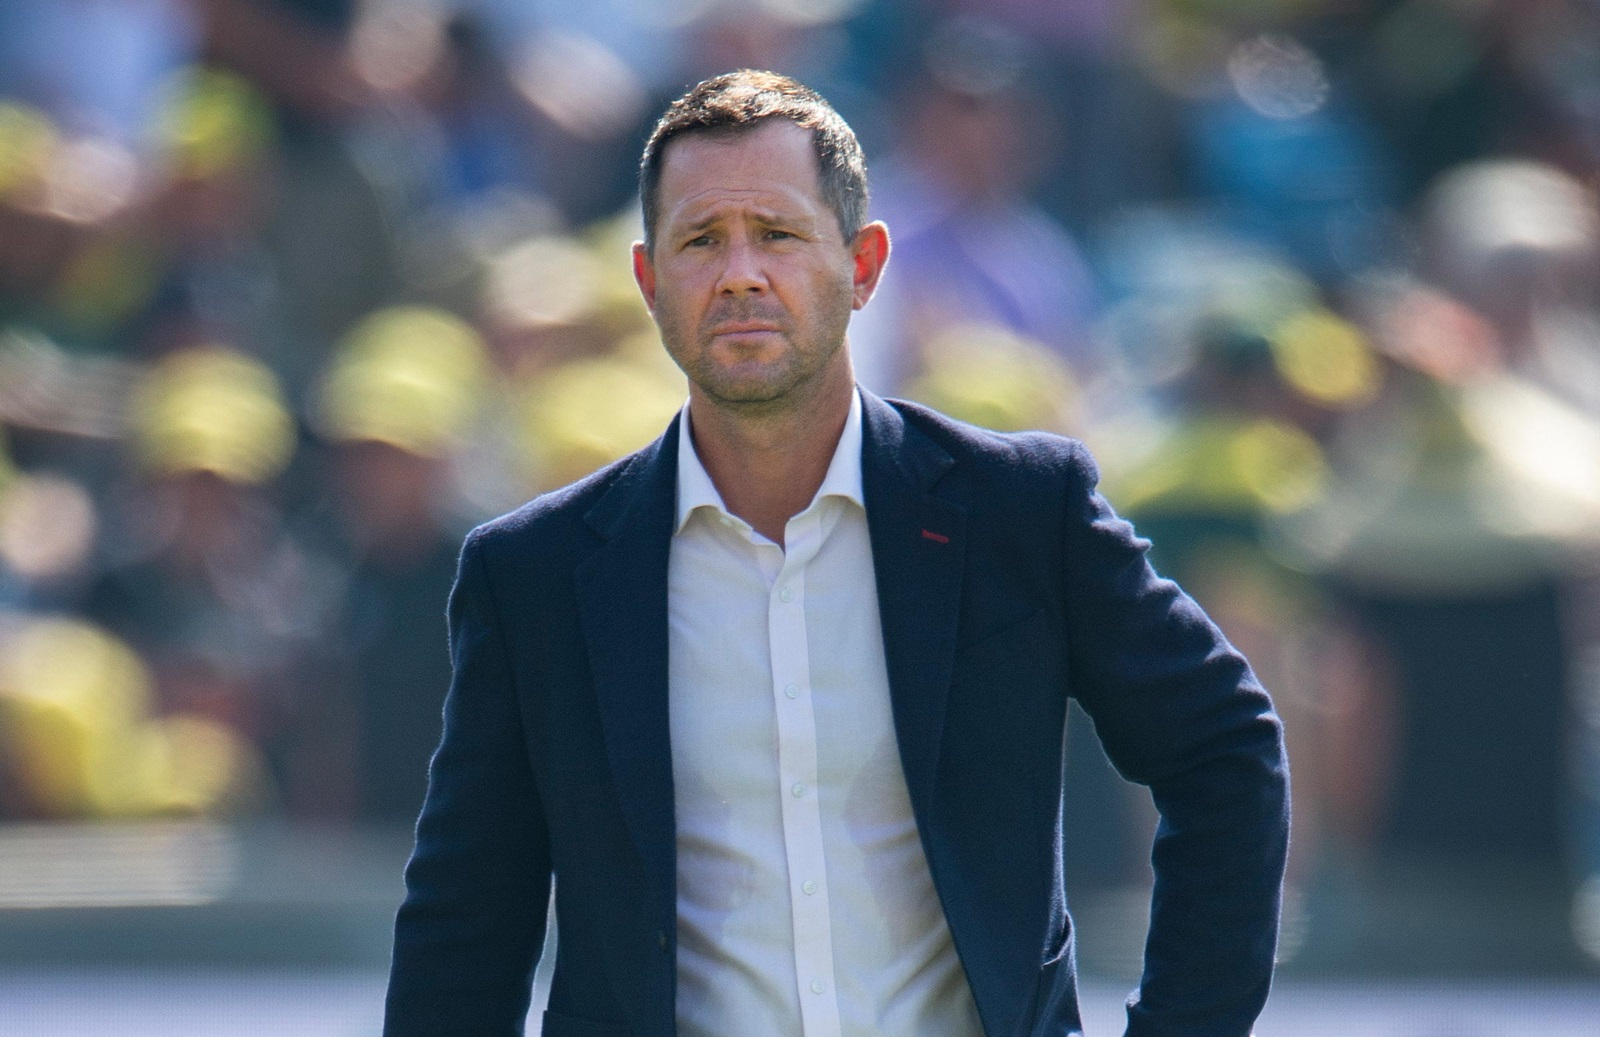 Unplayable Podcast: Ricky Ponting special episode | cricket.com.au